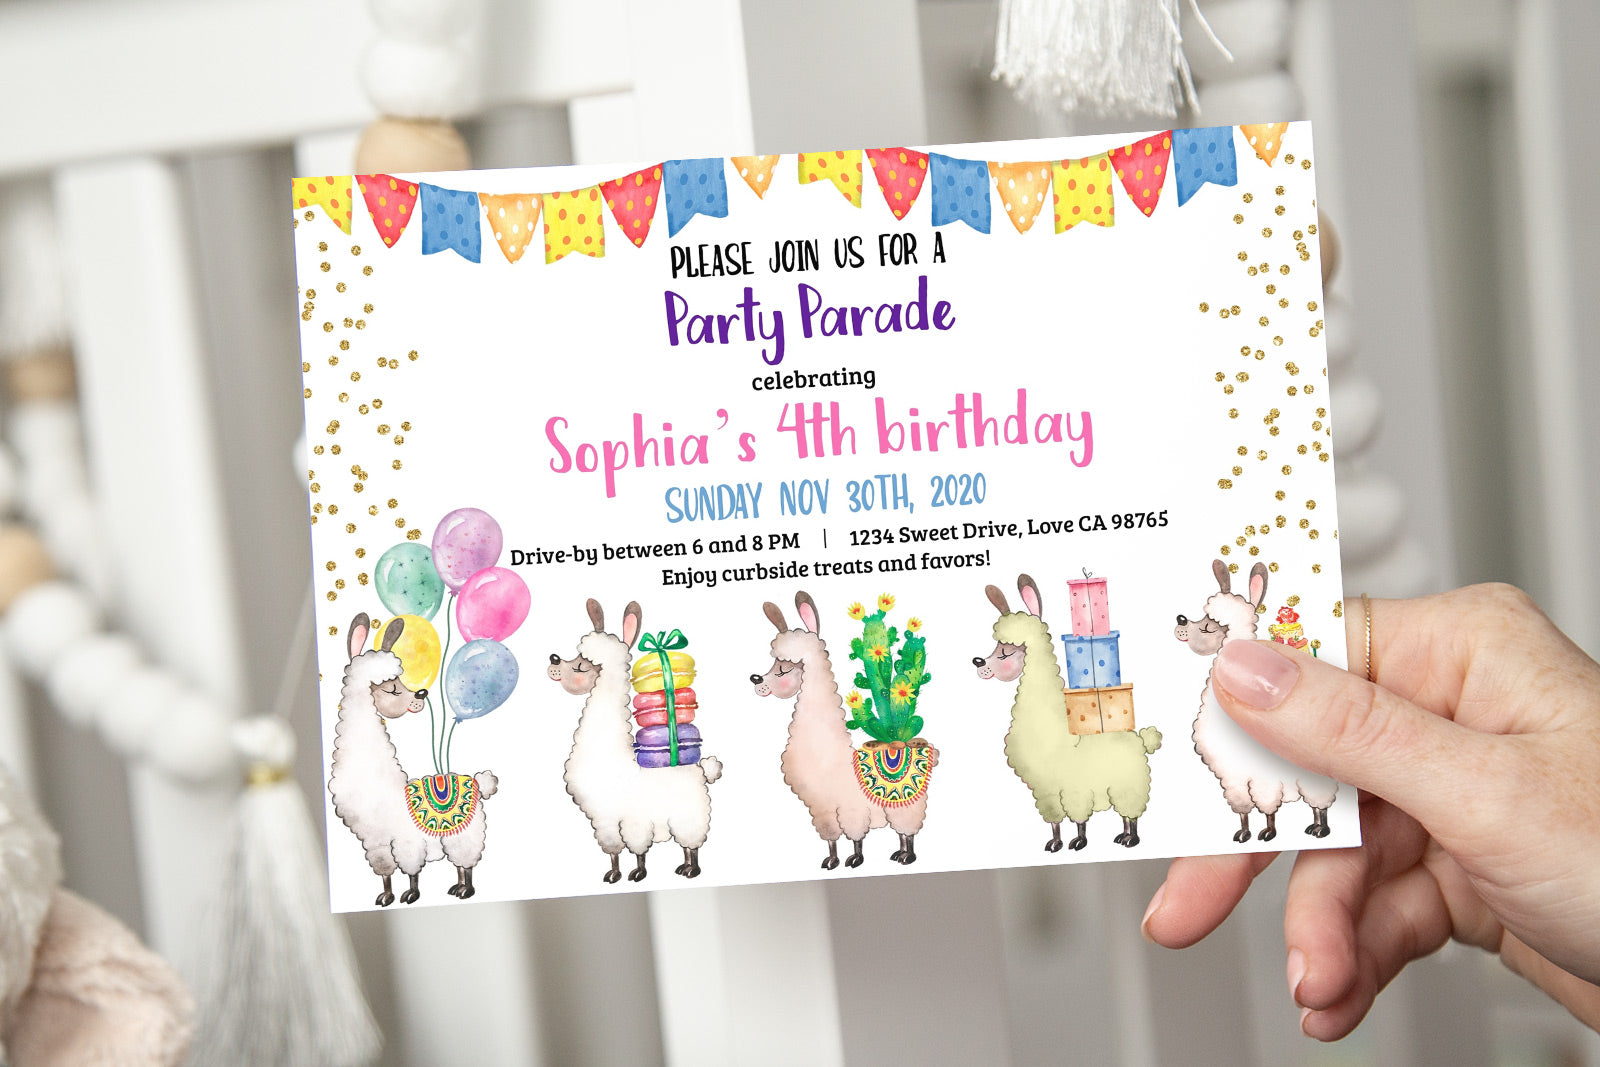 Llamas Party Parade Invitation | Llamas Drive By Birthday - 31